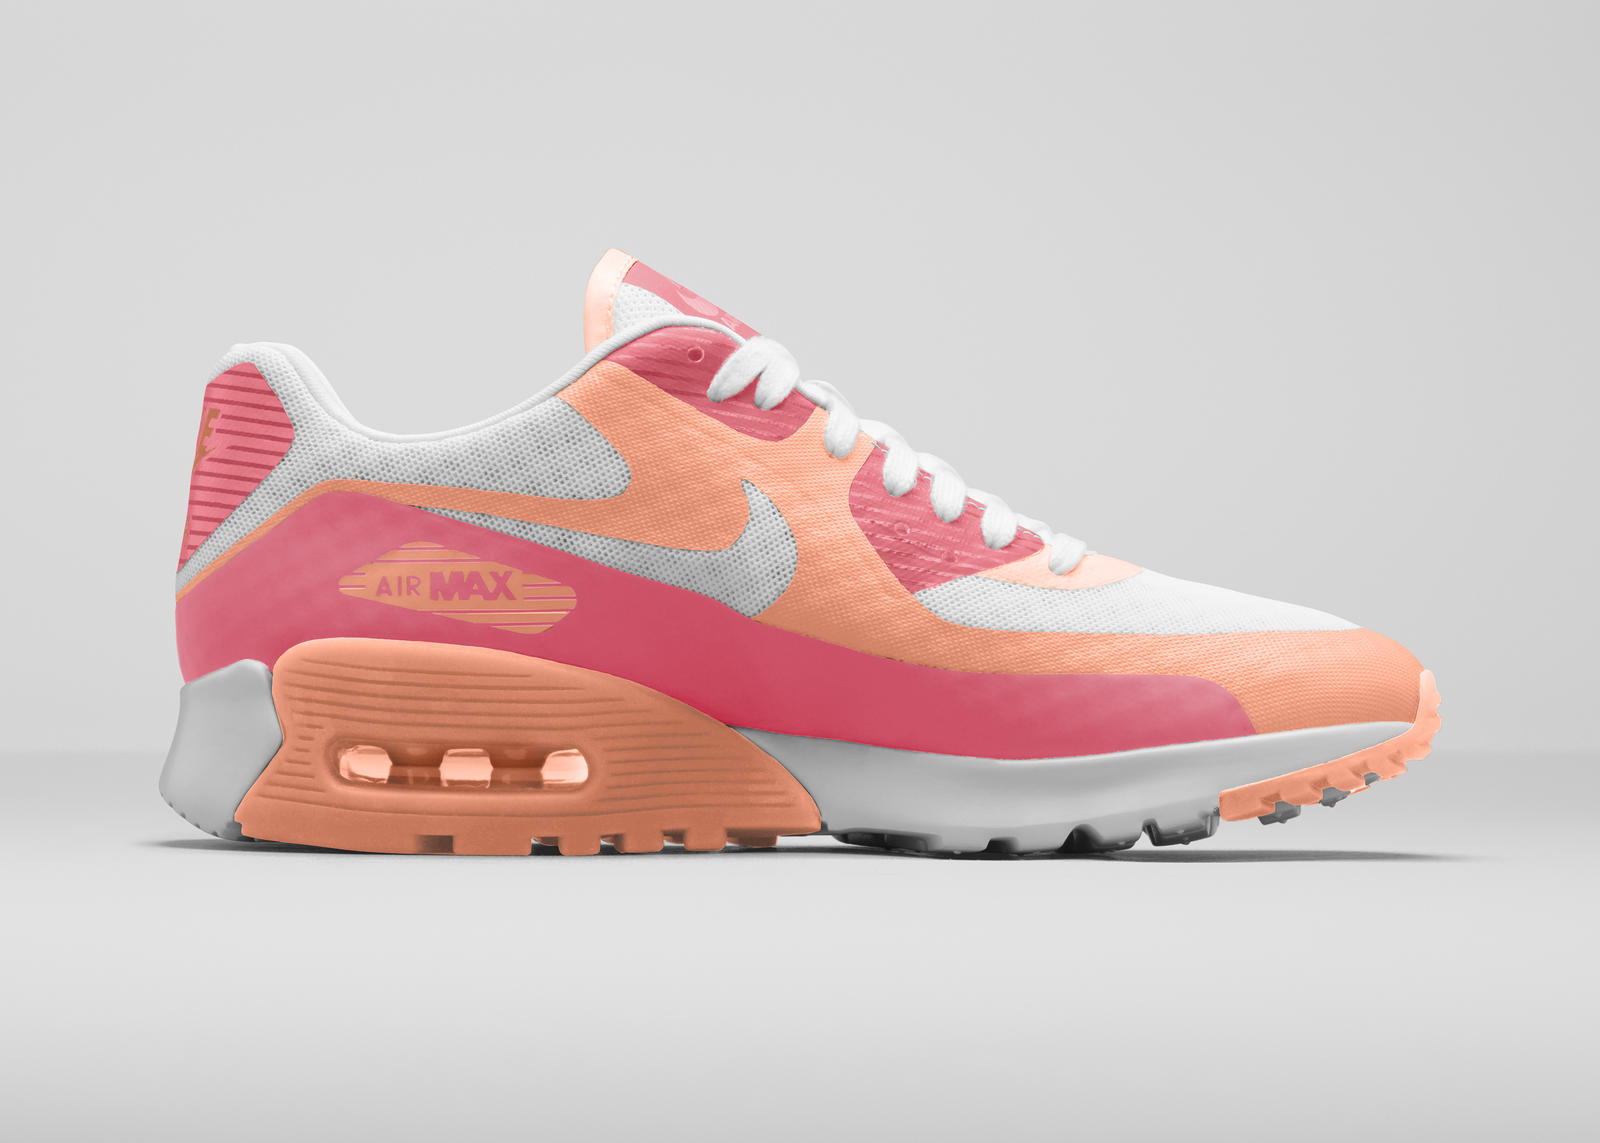 e702b166bc3 Air Max 90 Ultra Women 3 original. Air Max 90 Ultra Women 4 original.  Air Max 90 Ultra Women 6 original. Air Max 90 Ultra SU15 3